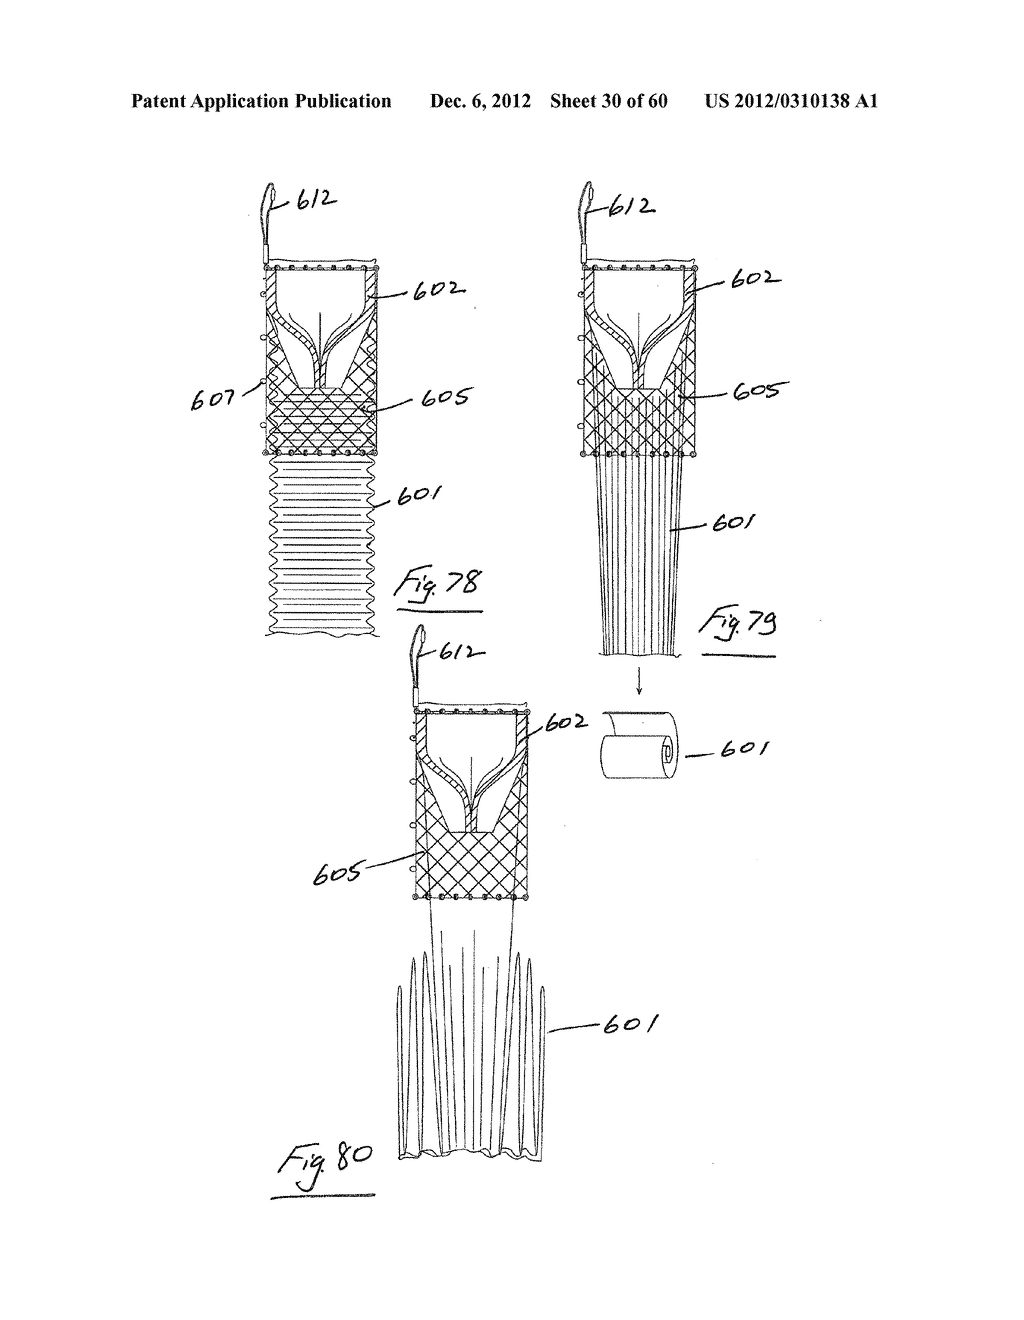 GASTROINTESTINAL IMPLANT DEVICE AND DELIVERY SYSTEM THEREFOR - diagram, schematic, and image 31